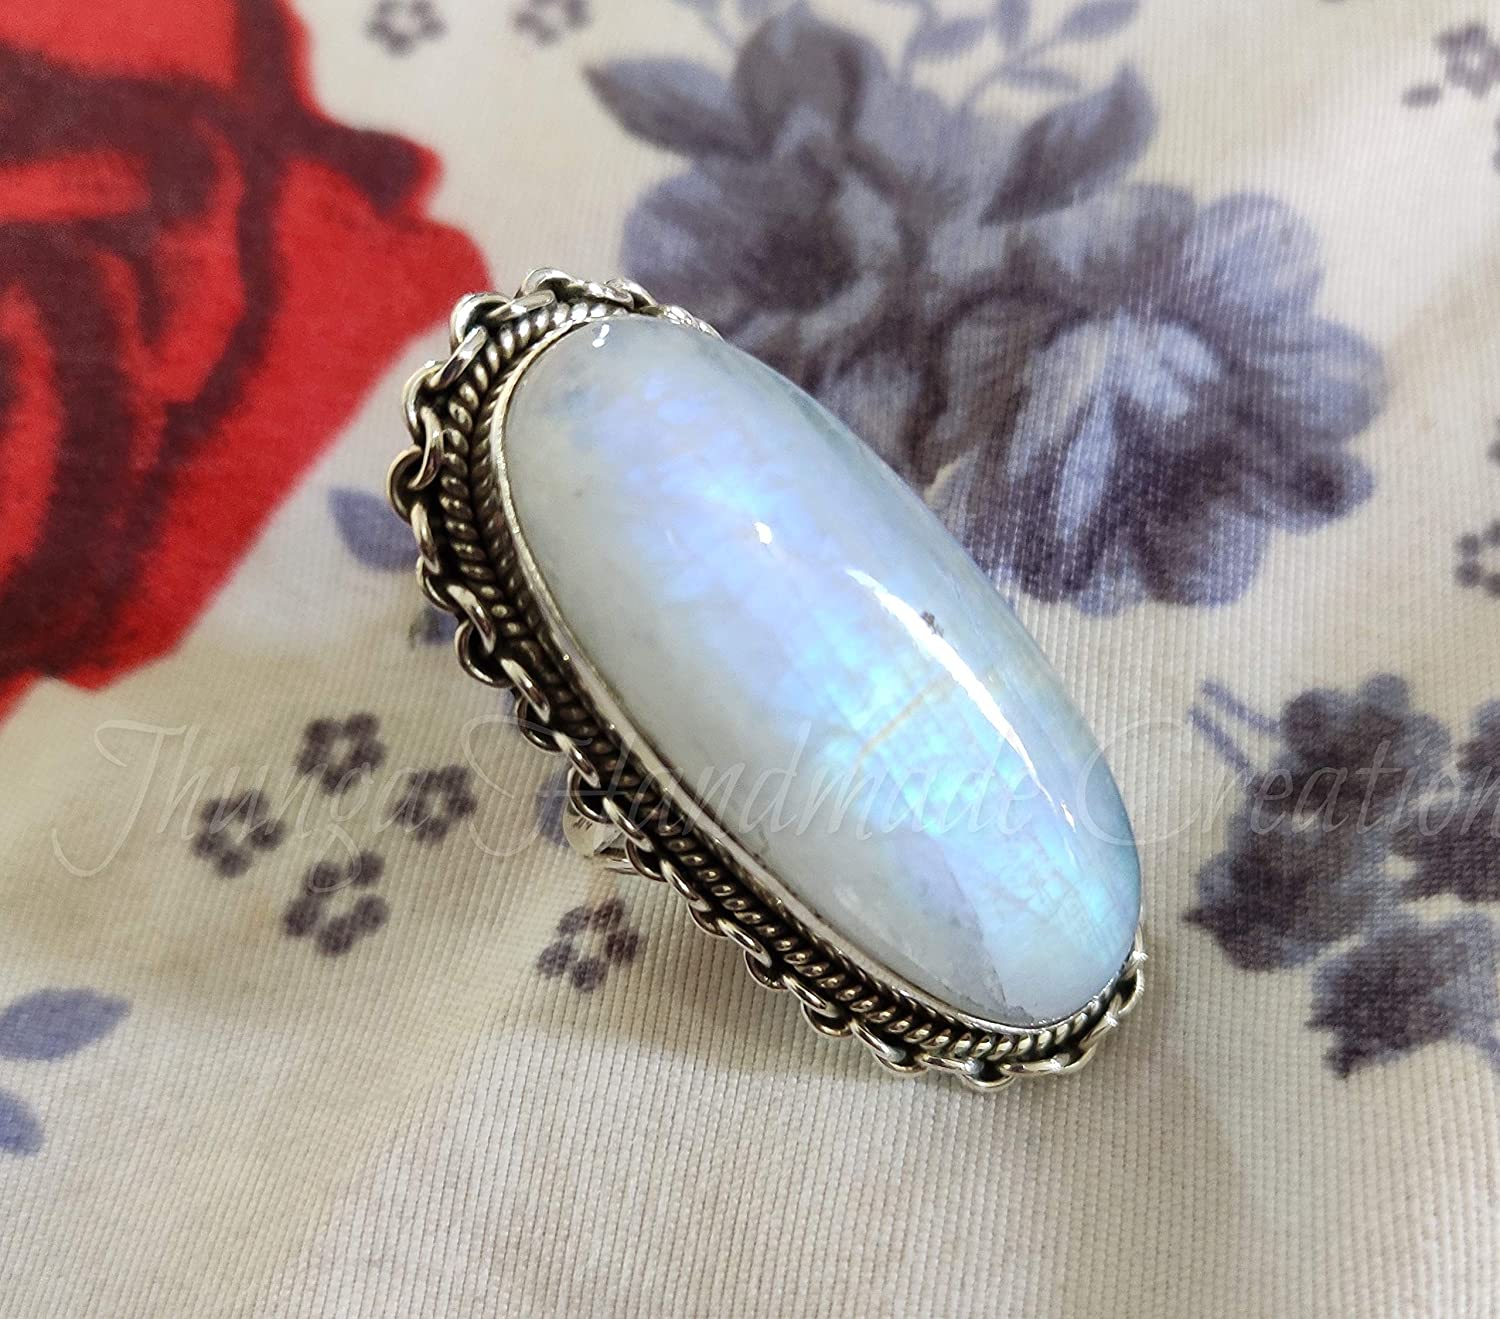 Rainbow moonstone ring-Large statement ring-Right hand ring-June birthstone ring-Gemstone ball ring-Wrap around ring-Silver ring-Spiral bold